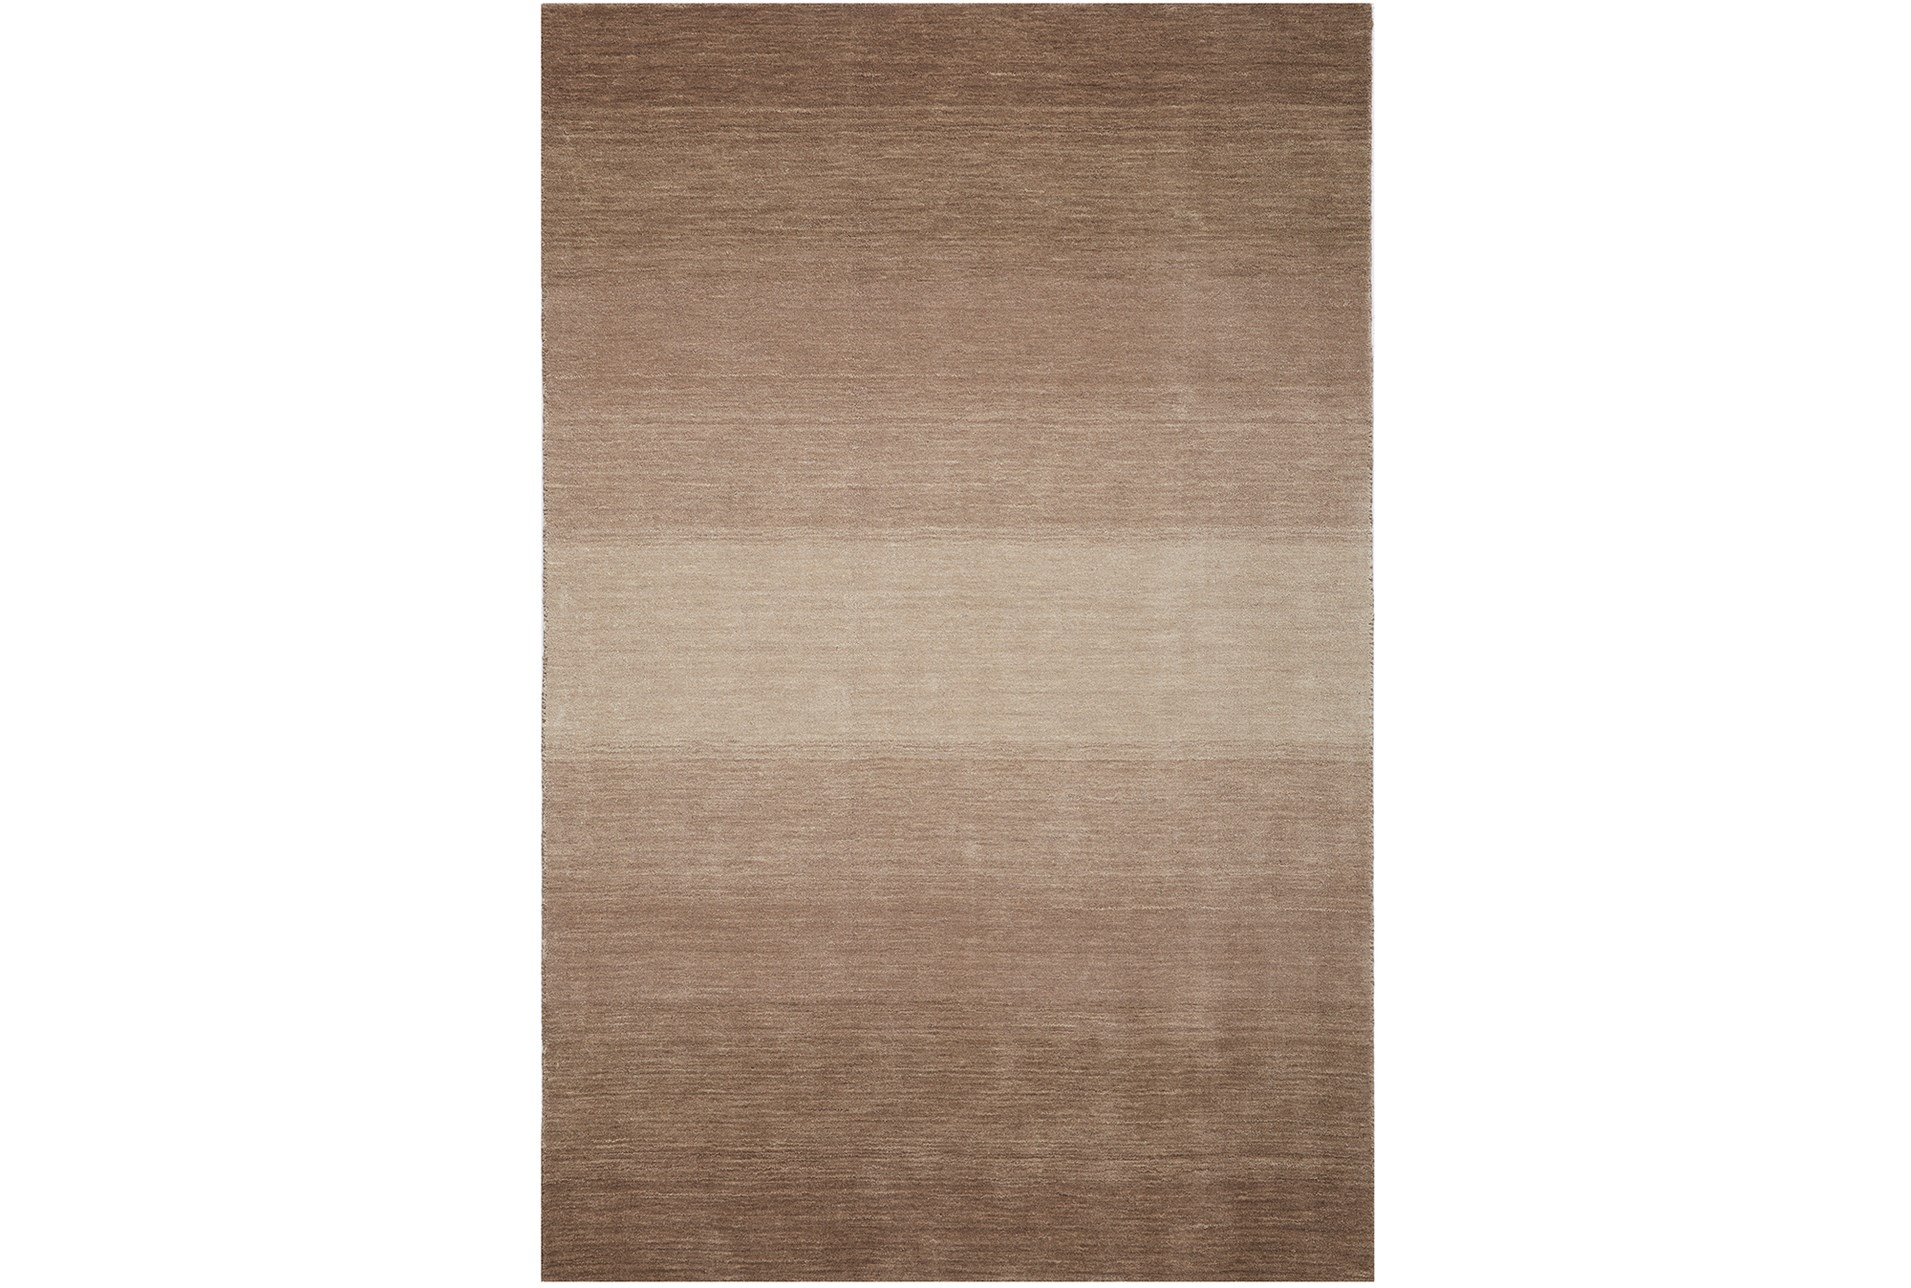 taupe turquoise products light gray ombre teal plush damask of blue rug modern shades